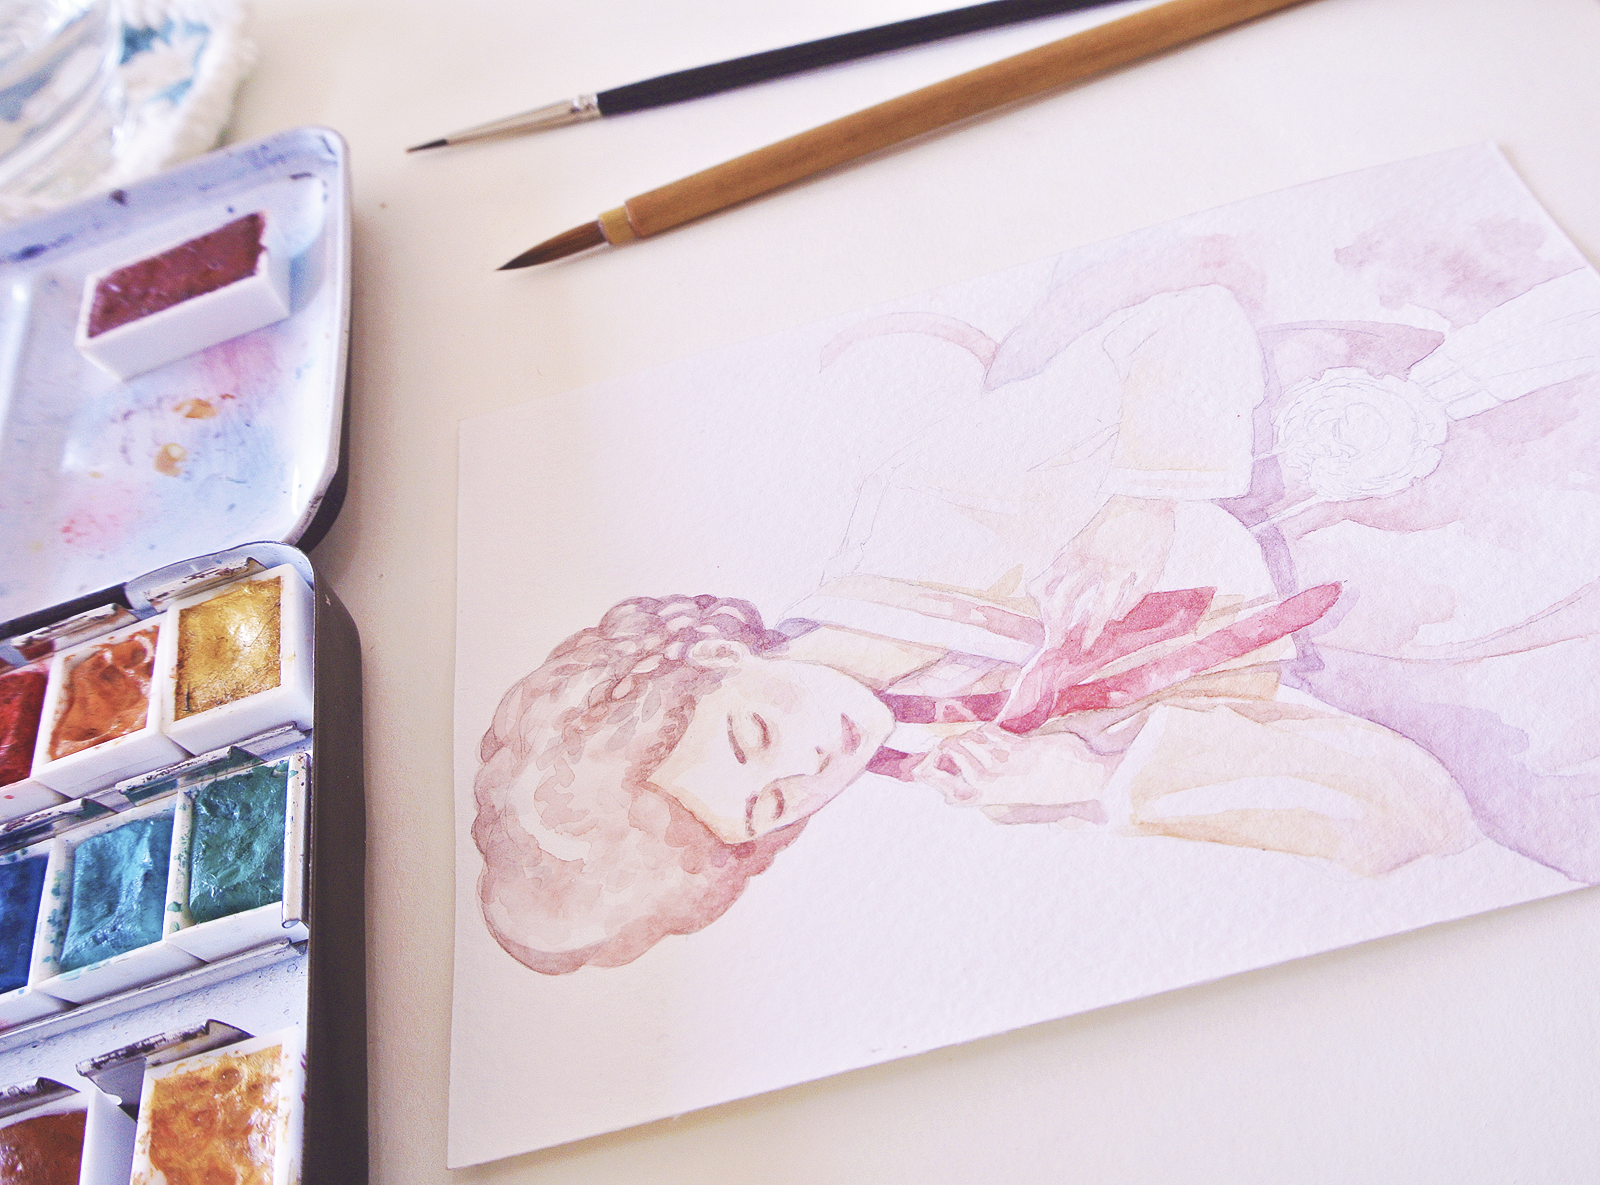 First step by step image of early watercolor layers for the Year of the Rooster Zodiac Sign illustration. Lady in a Hanbok, Postcard artwork.